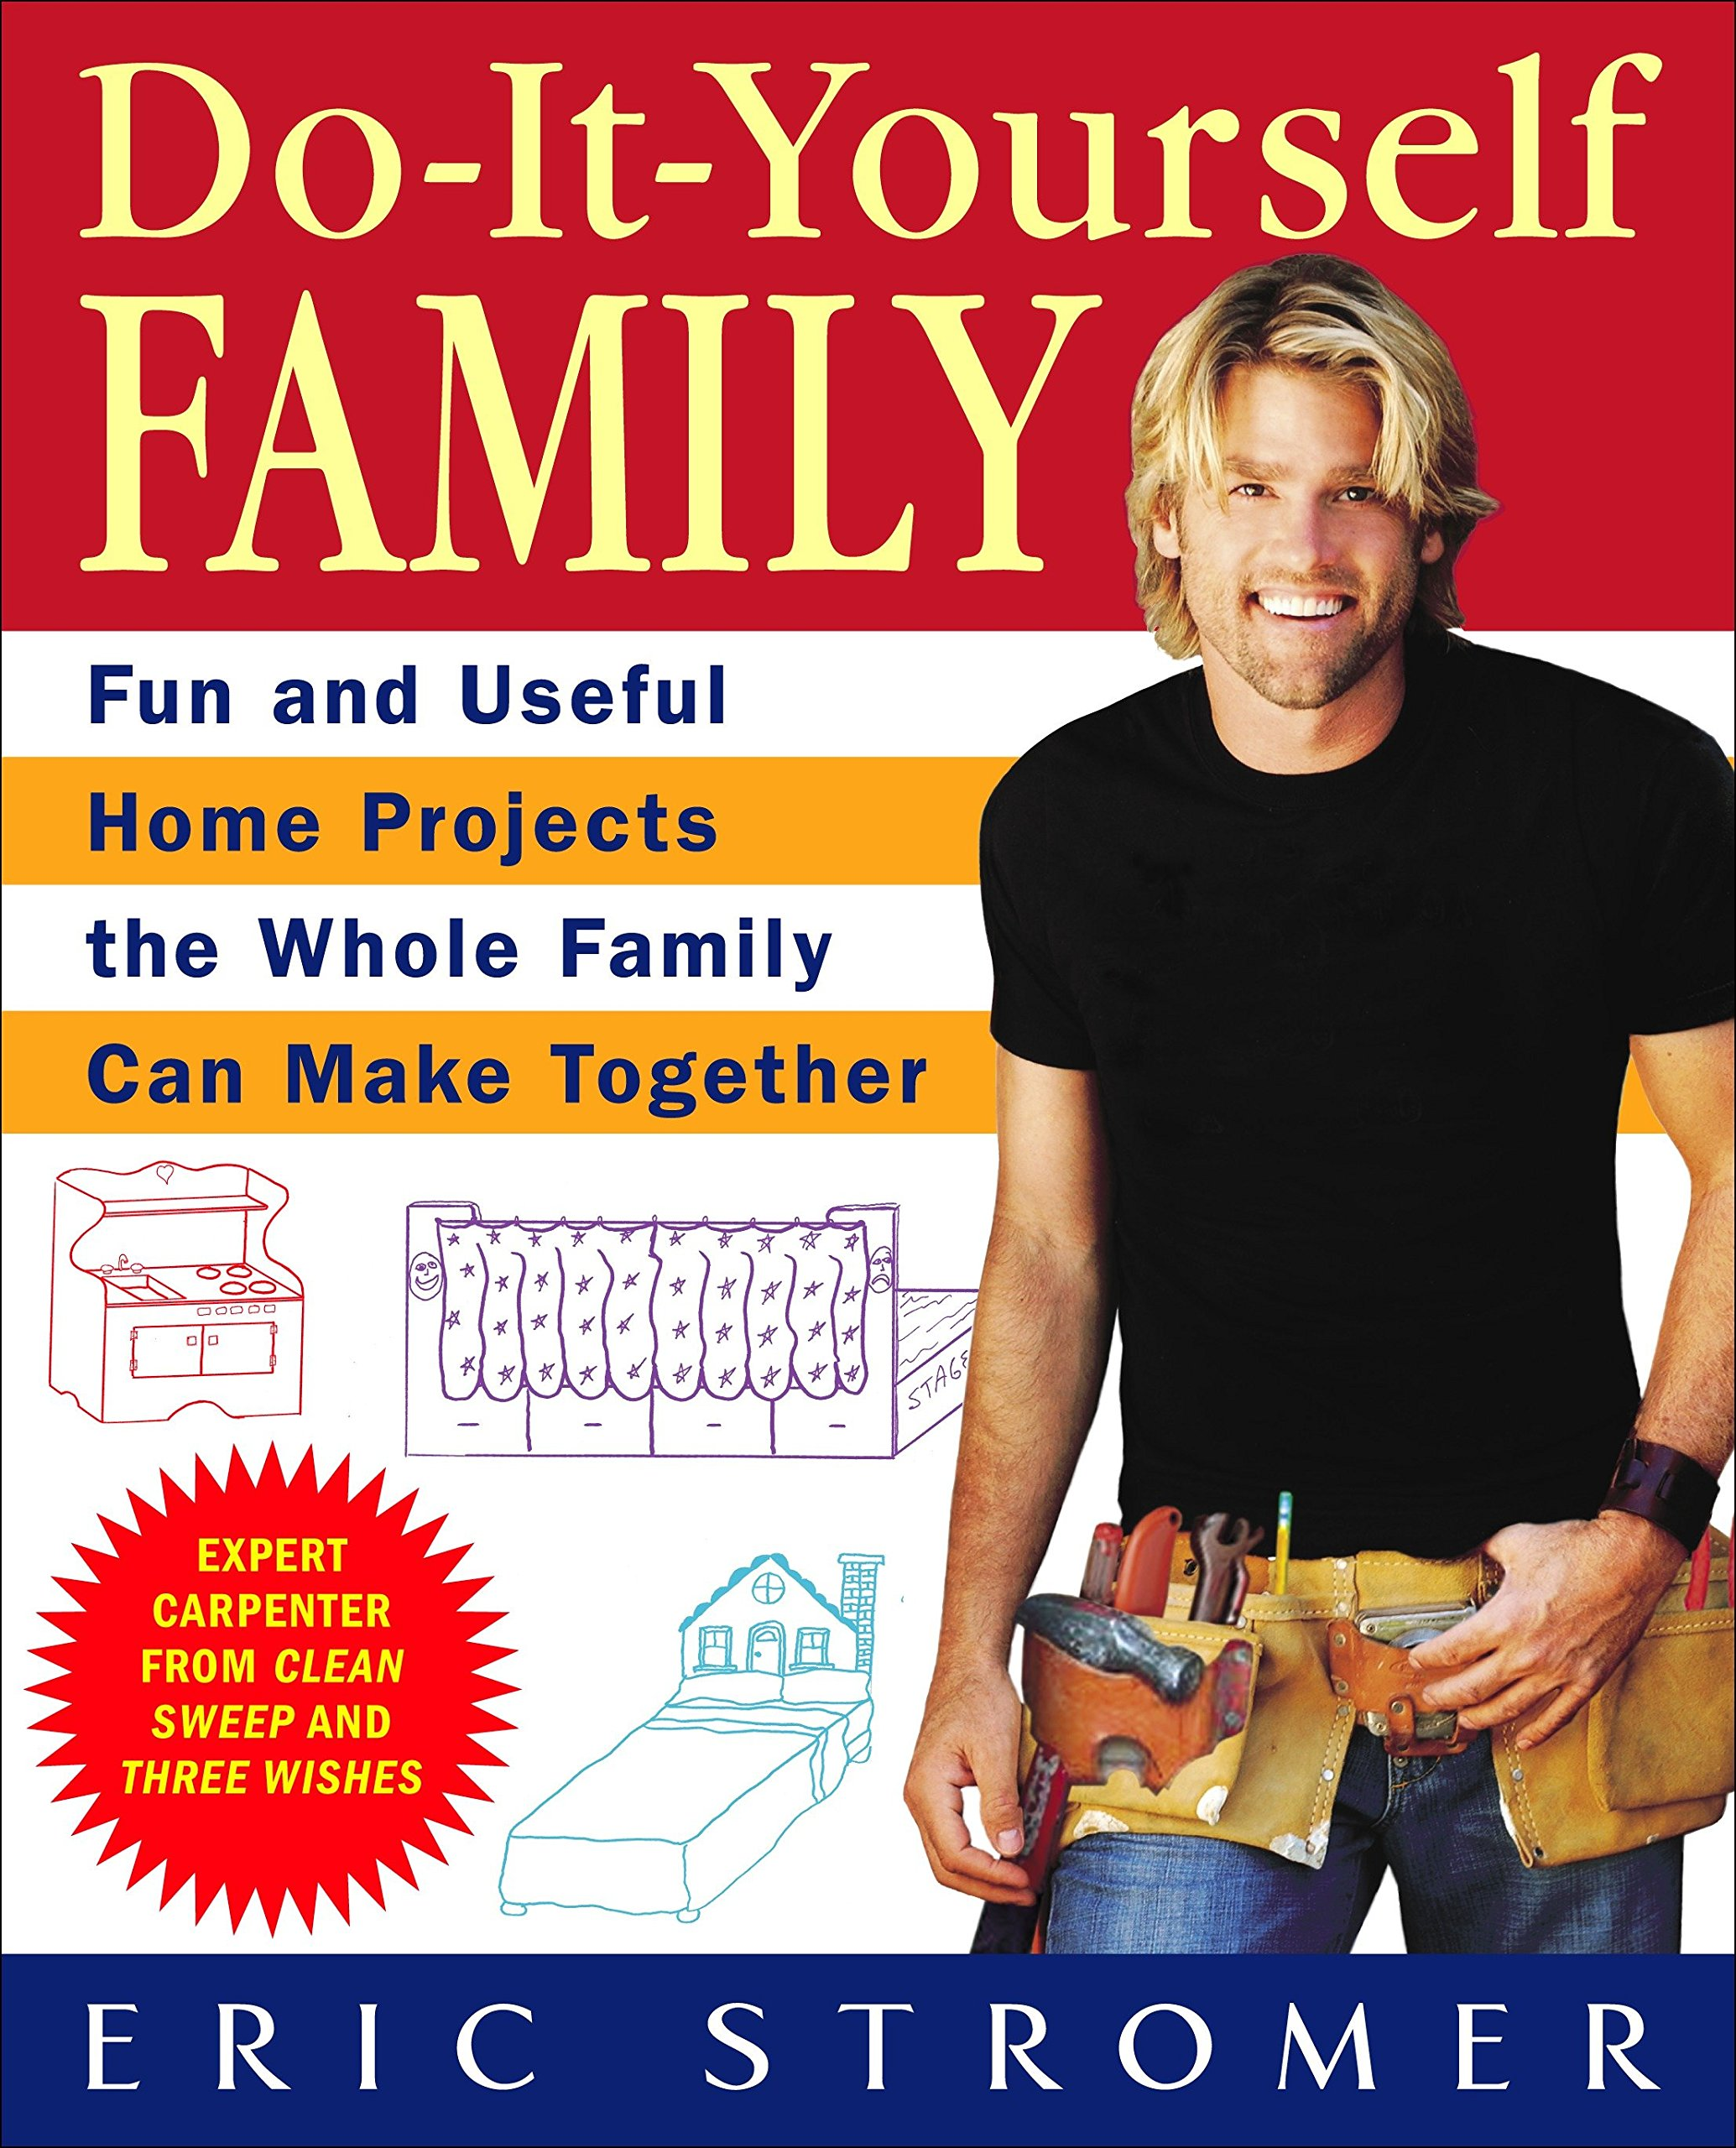 Do it yourself family fun and useful home projects the whole family do it yourself family fun and useful home projects the whole family can make together eric stromer 9780553384024 amazon books solutioingenieria Gallery